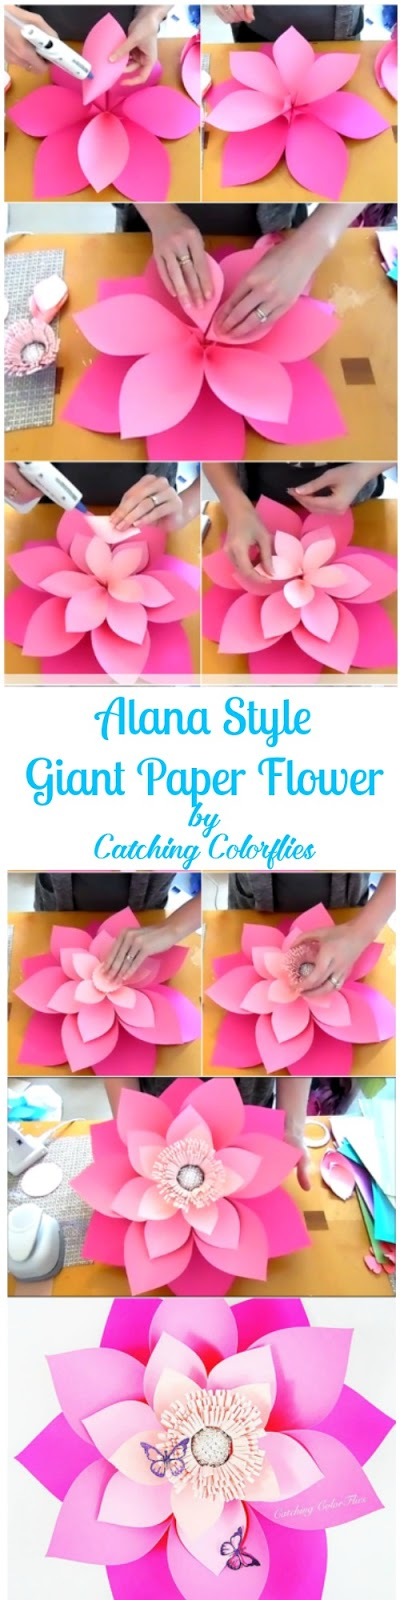 How to make giant hawaiian paper flowers abbi kirsten collections diy alana layered paper flower flower templates diy paper flower tutorials mightylinksfo